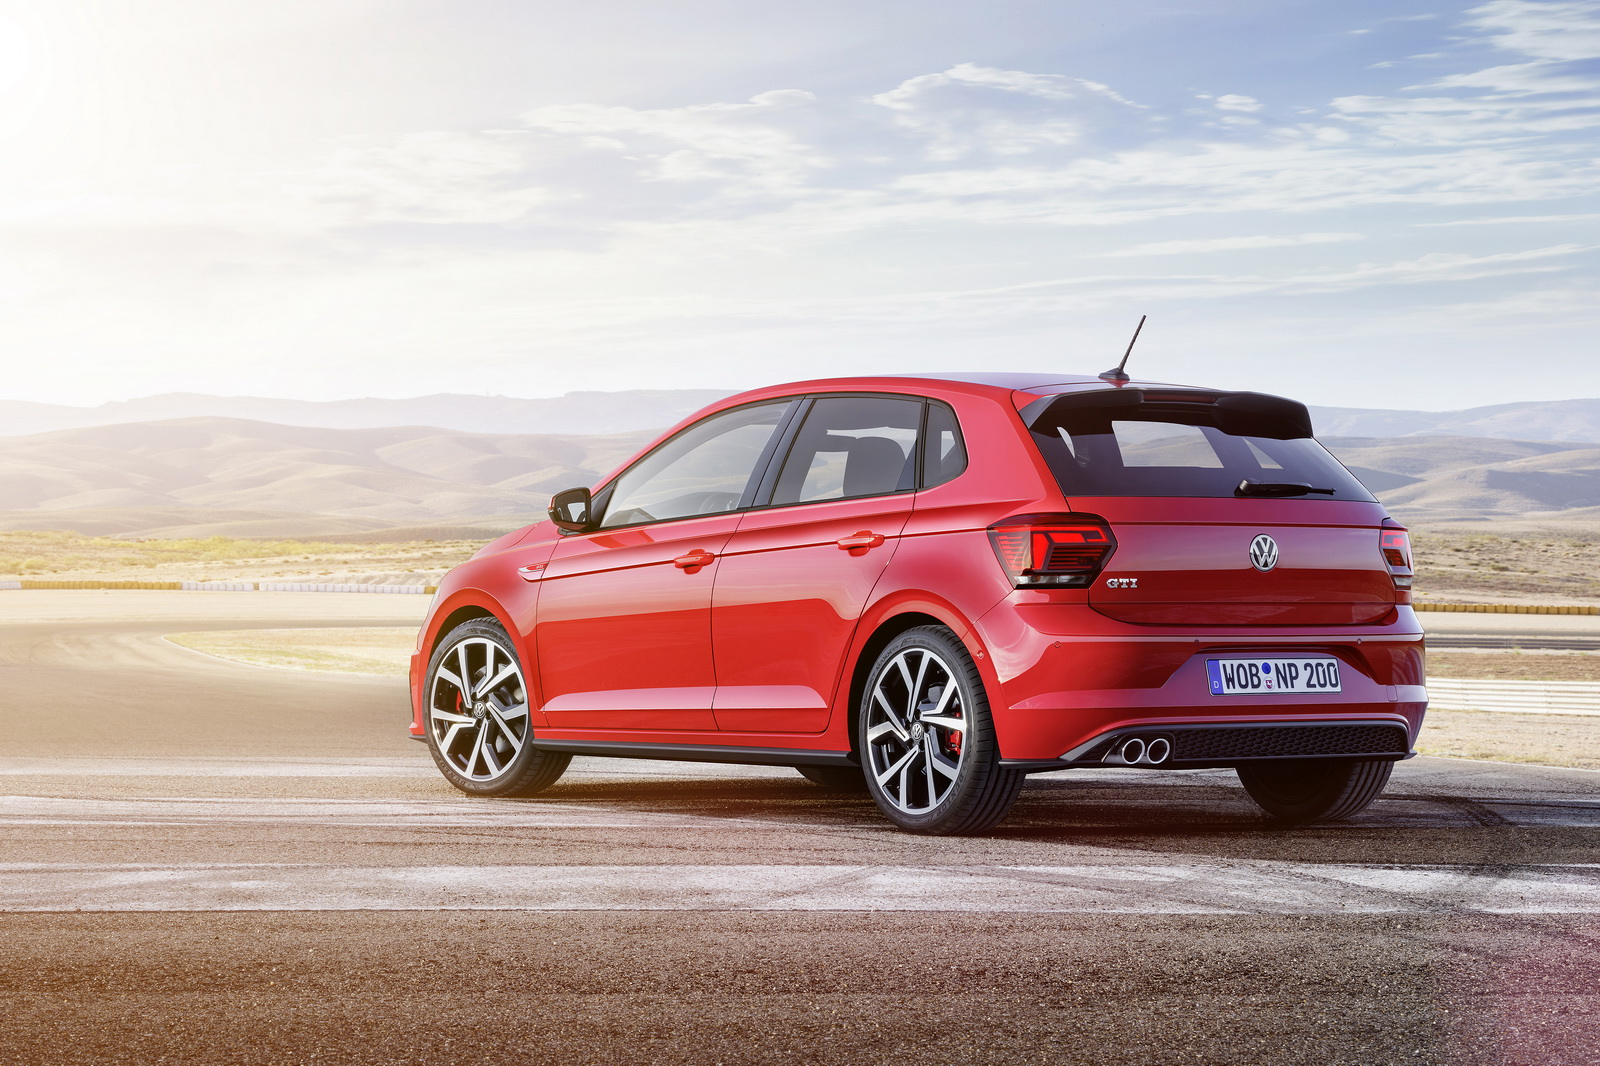 Volkswagen Polo and Polo GTI 2018 (45)